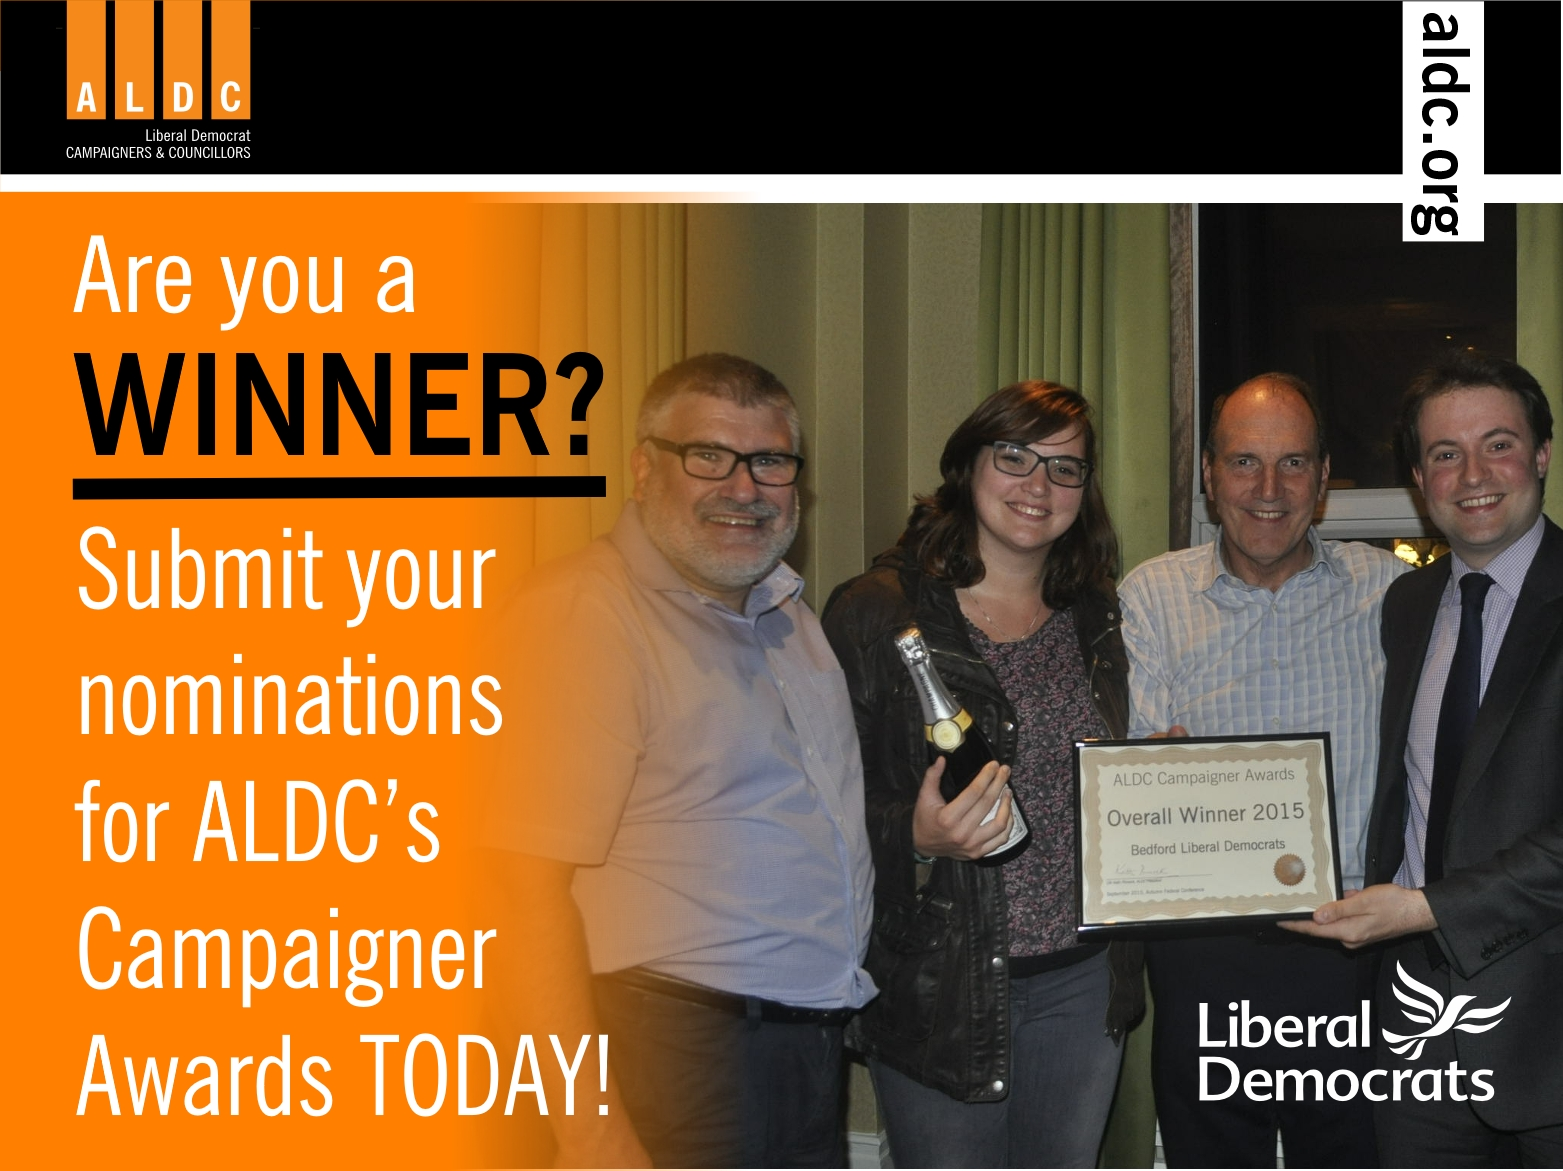 Haven't submitted a Campaigner Awards entry yet? Time is running out!